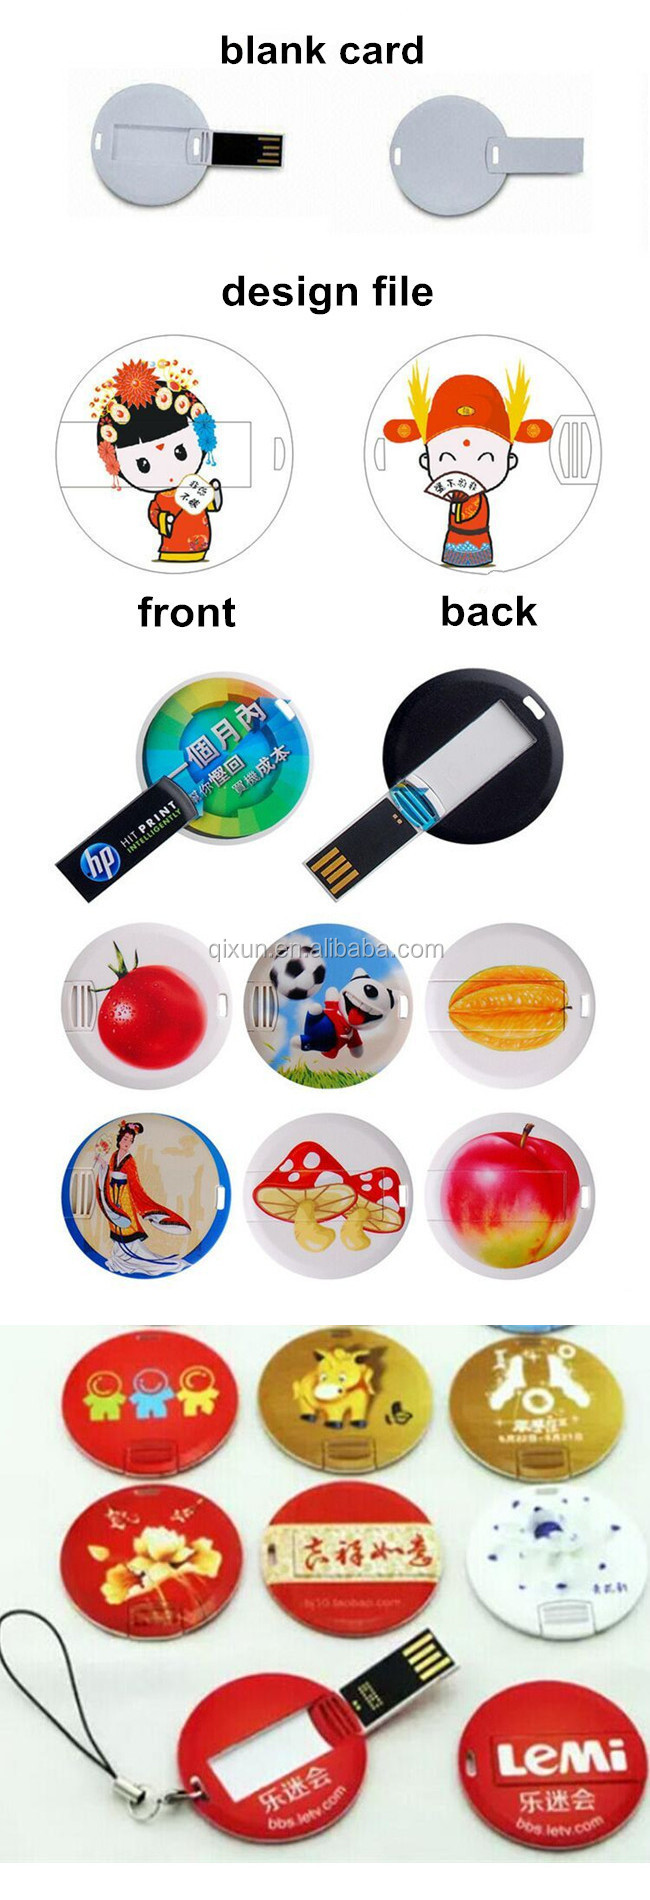 bulk 2gb mini round card usb flash drive, assurance secure order and paypal accept usb flash drive card 2gb